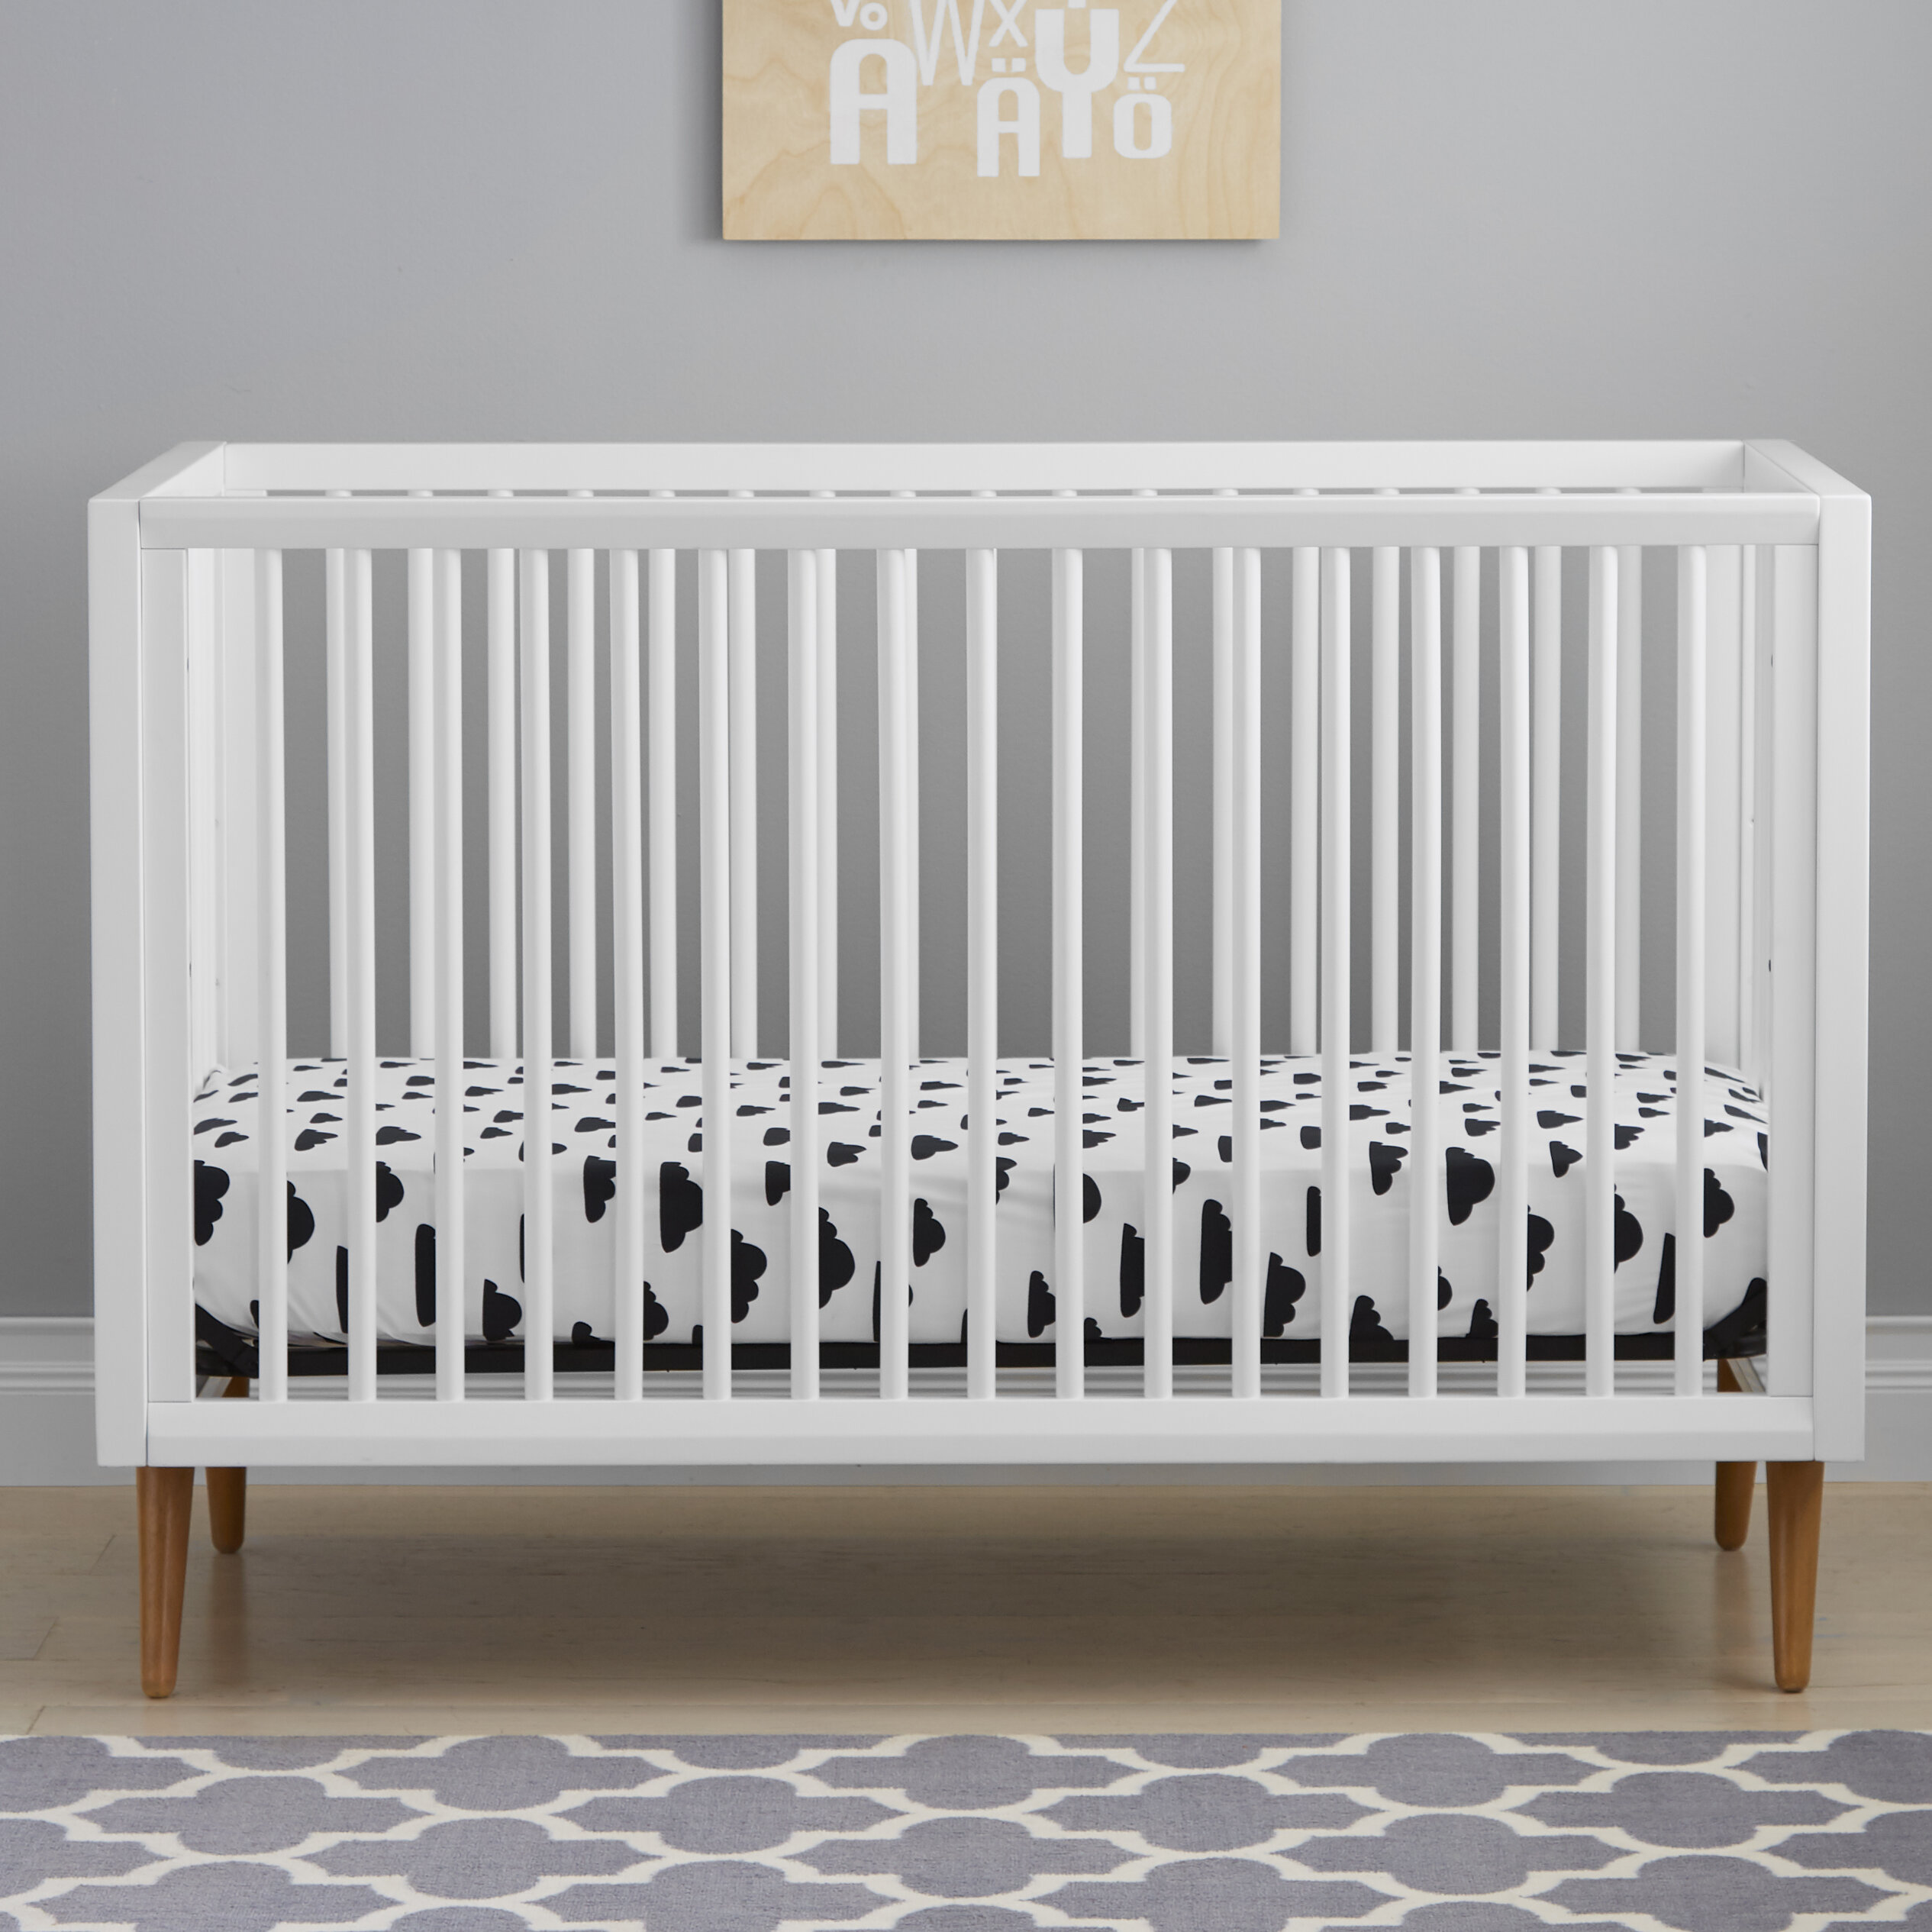 committee cot a cribs the home made legs through solution by see bars crib